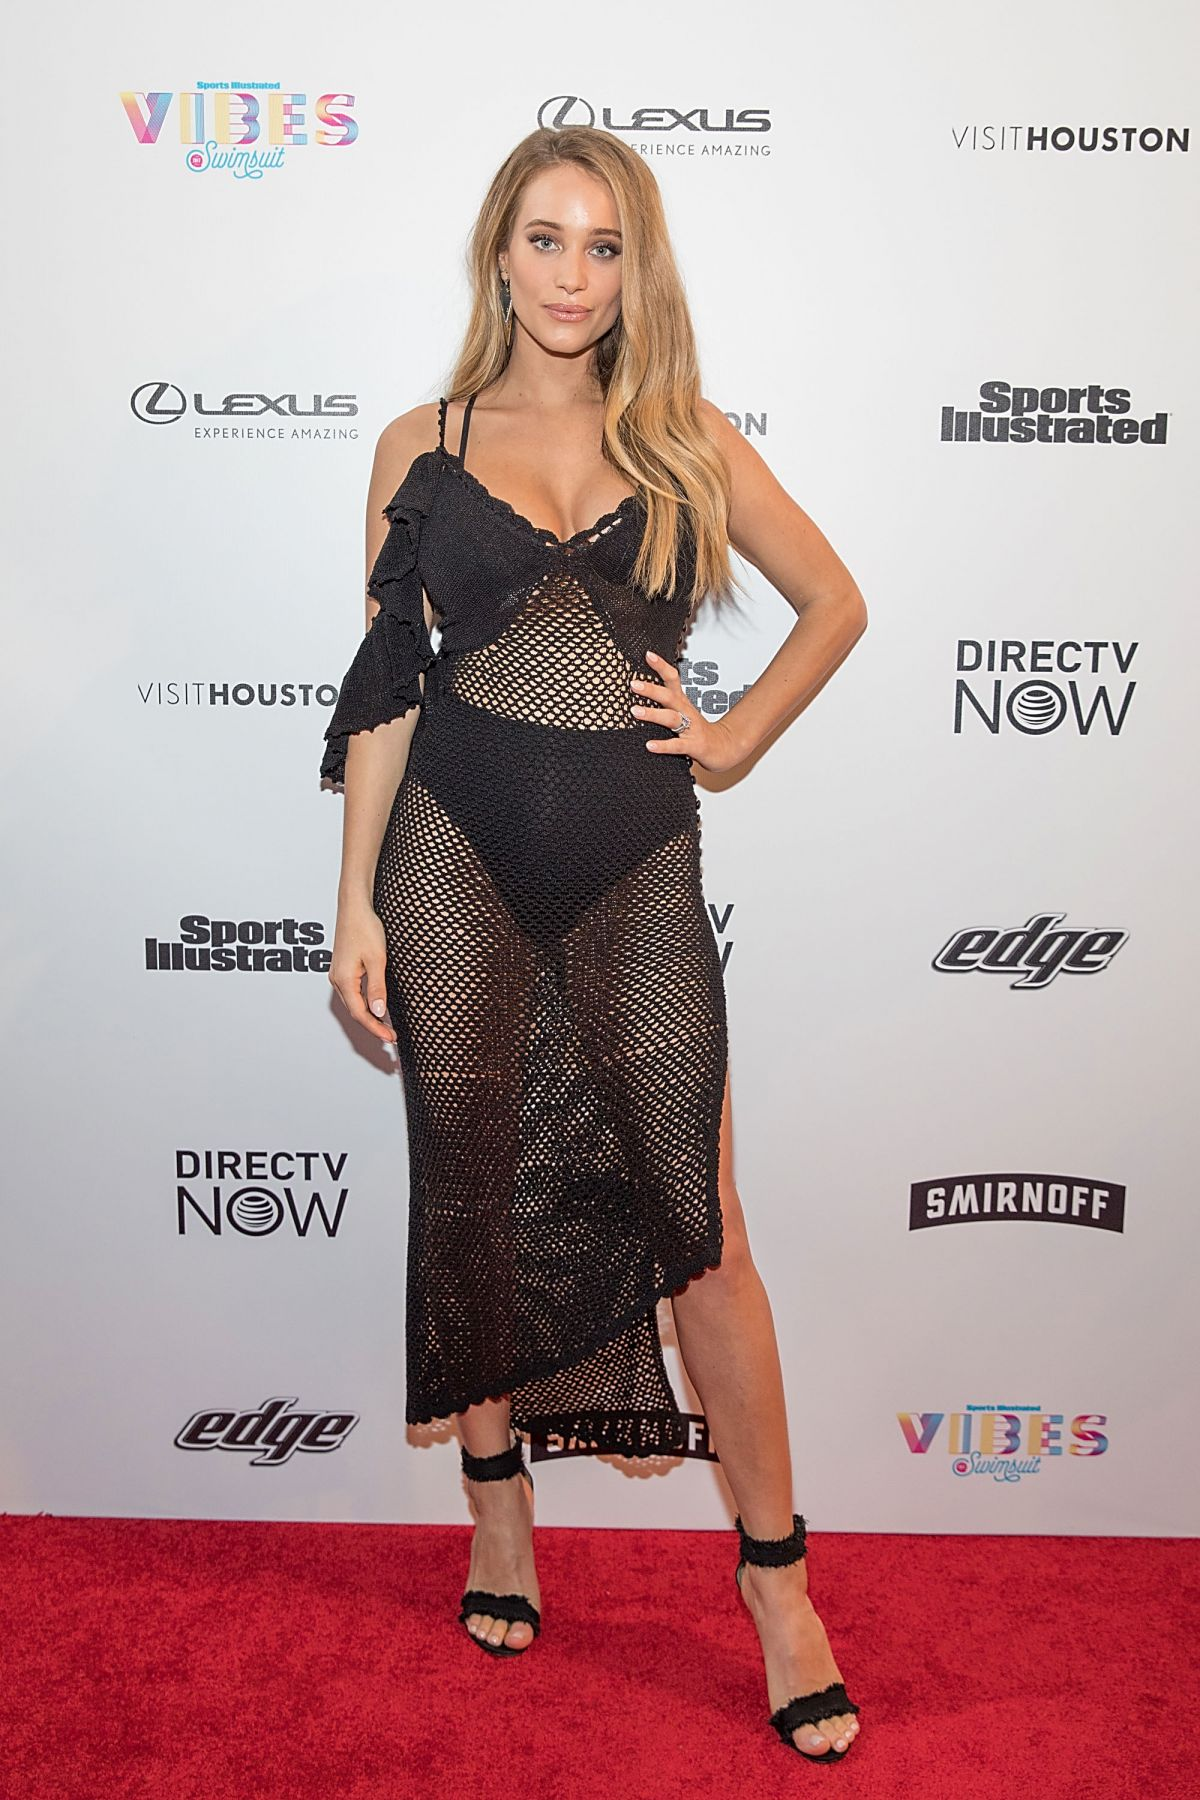 HANNAH JETER at VIBES by SI Swimsuit 2017 Launch Festival Day 2 in Houston 02/18/2017